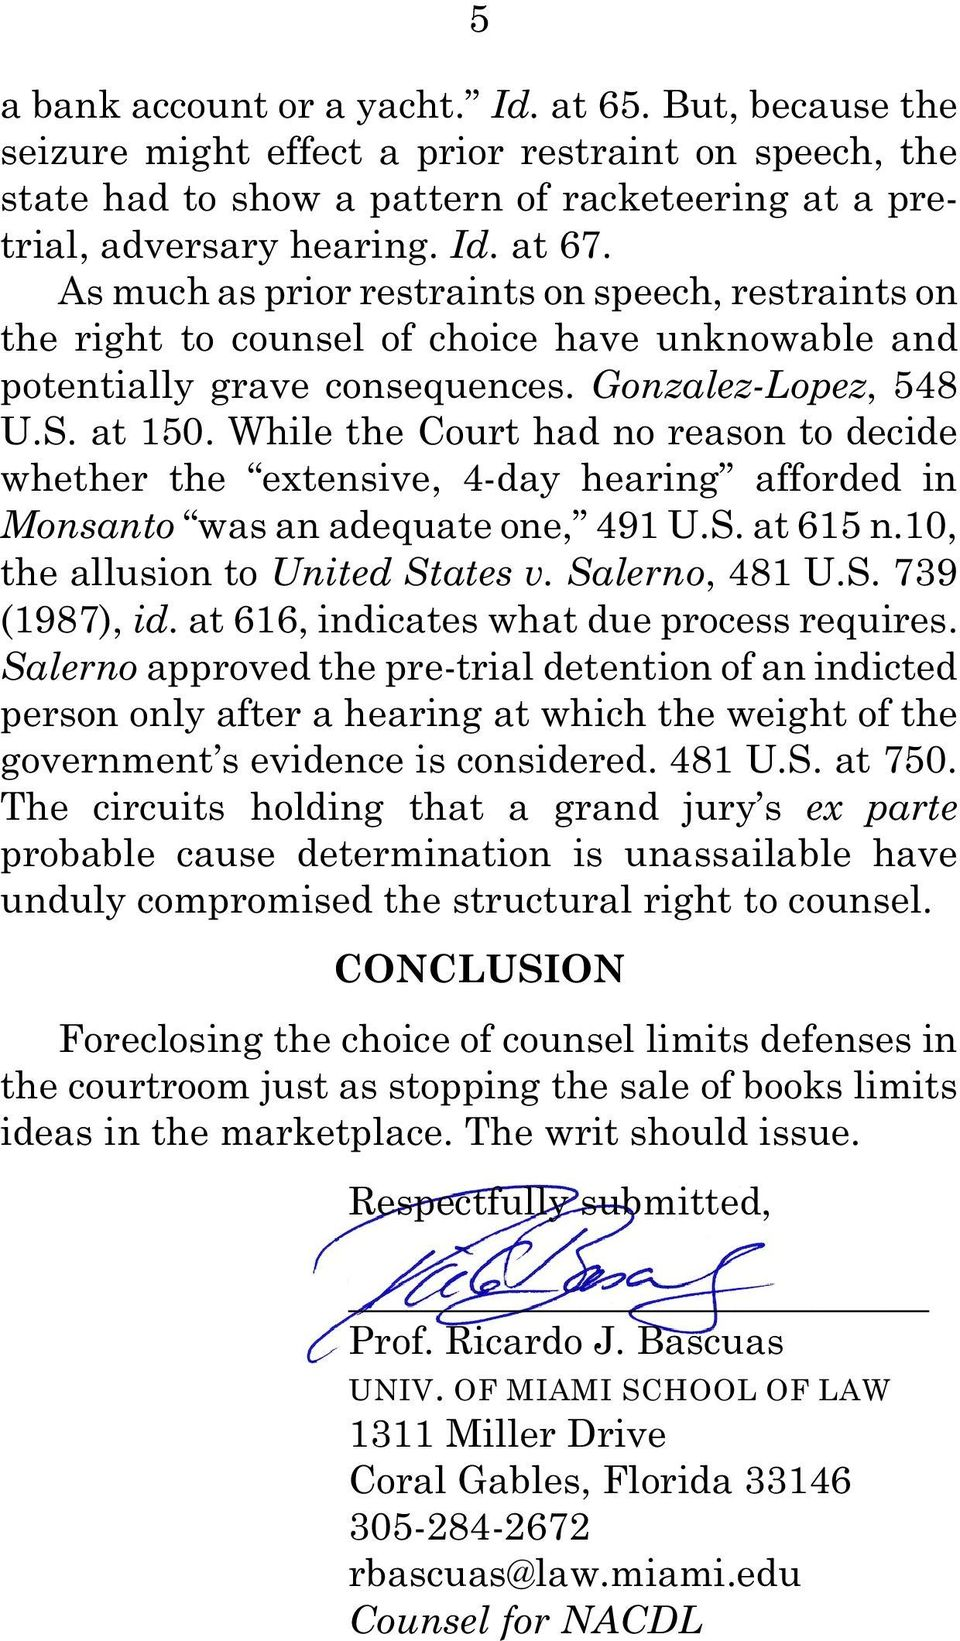 While the Court had no reason to decide whether the extensive, 4-day hearing afforded in Monsanto was an adequate one, 491 U.S. at 615 n.10, the allusion to United States v. Salerno, 481 U.S. 739 (1987), id.